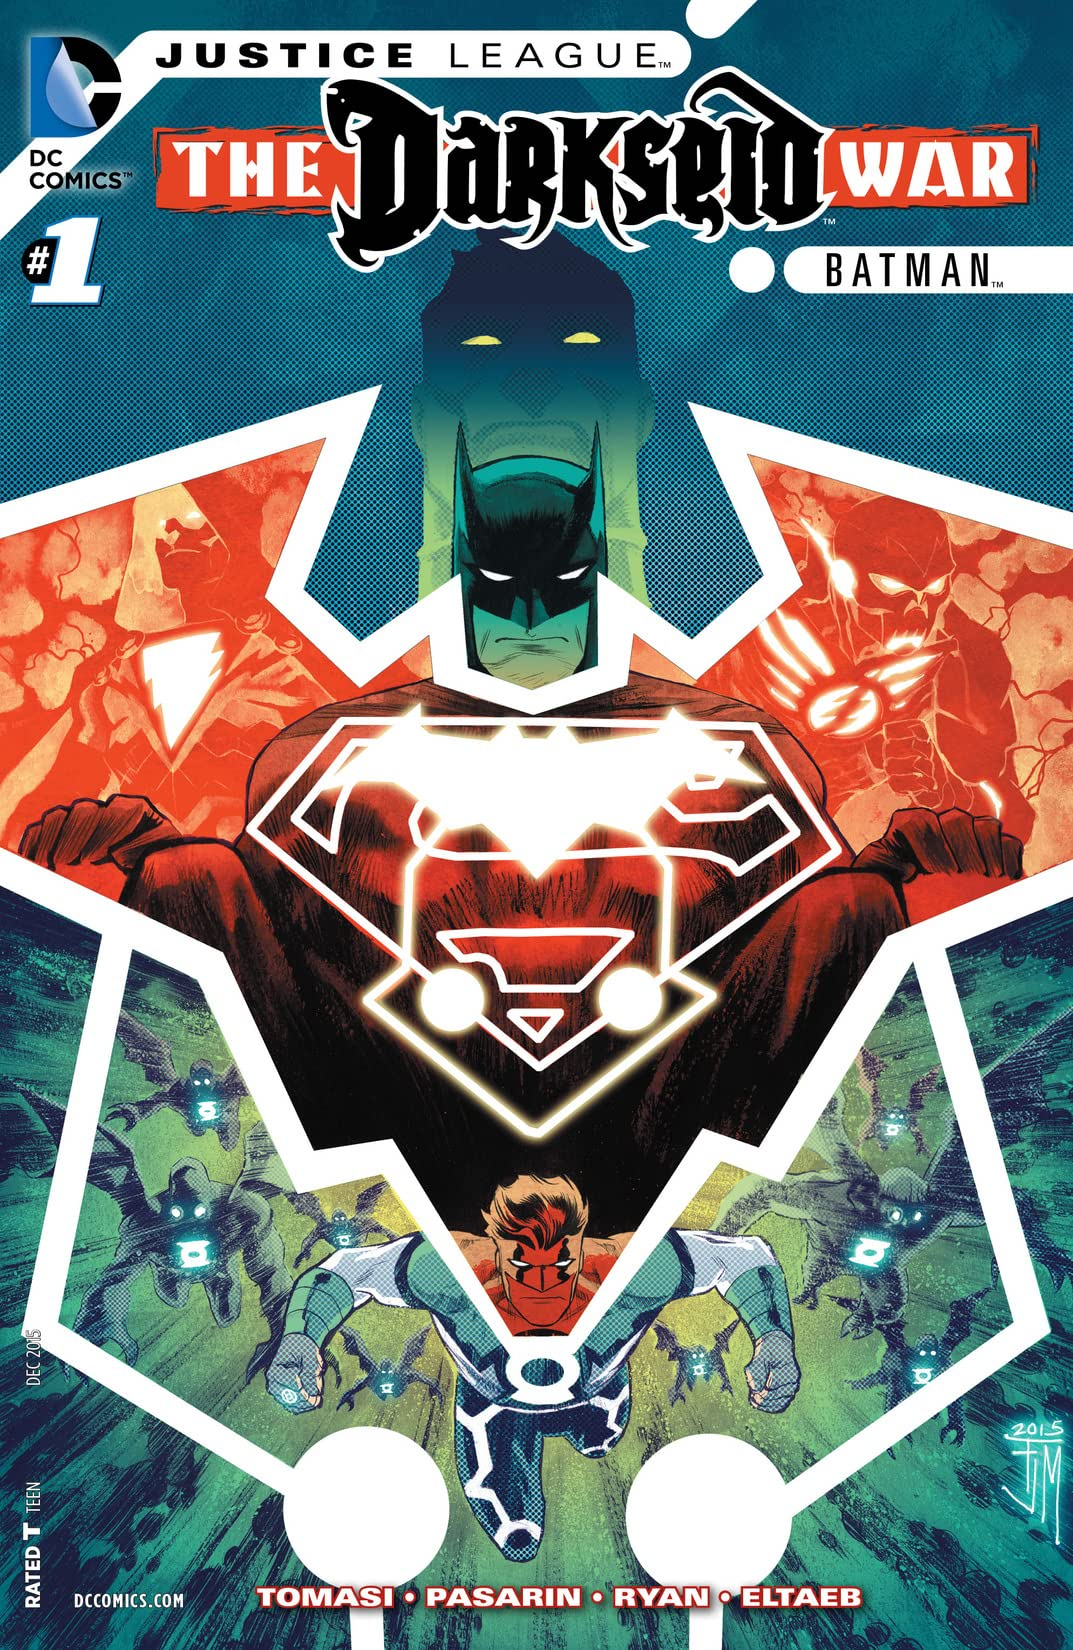 Justice League: The Darkseid War: Batman (2015) #1